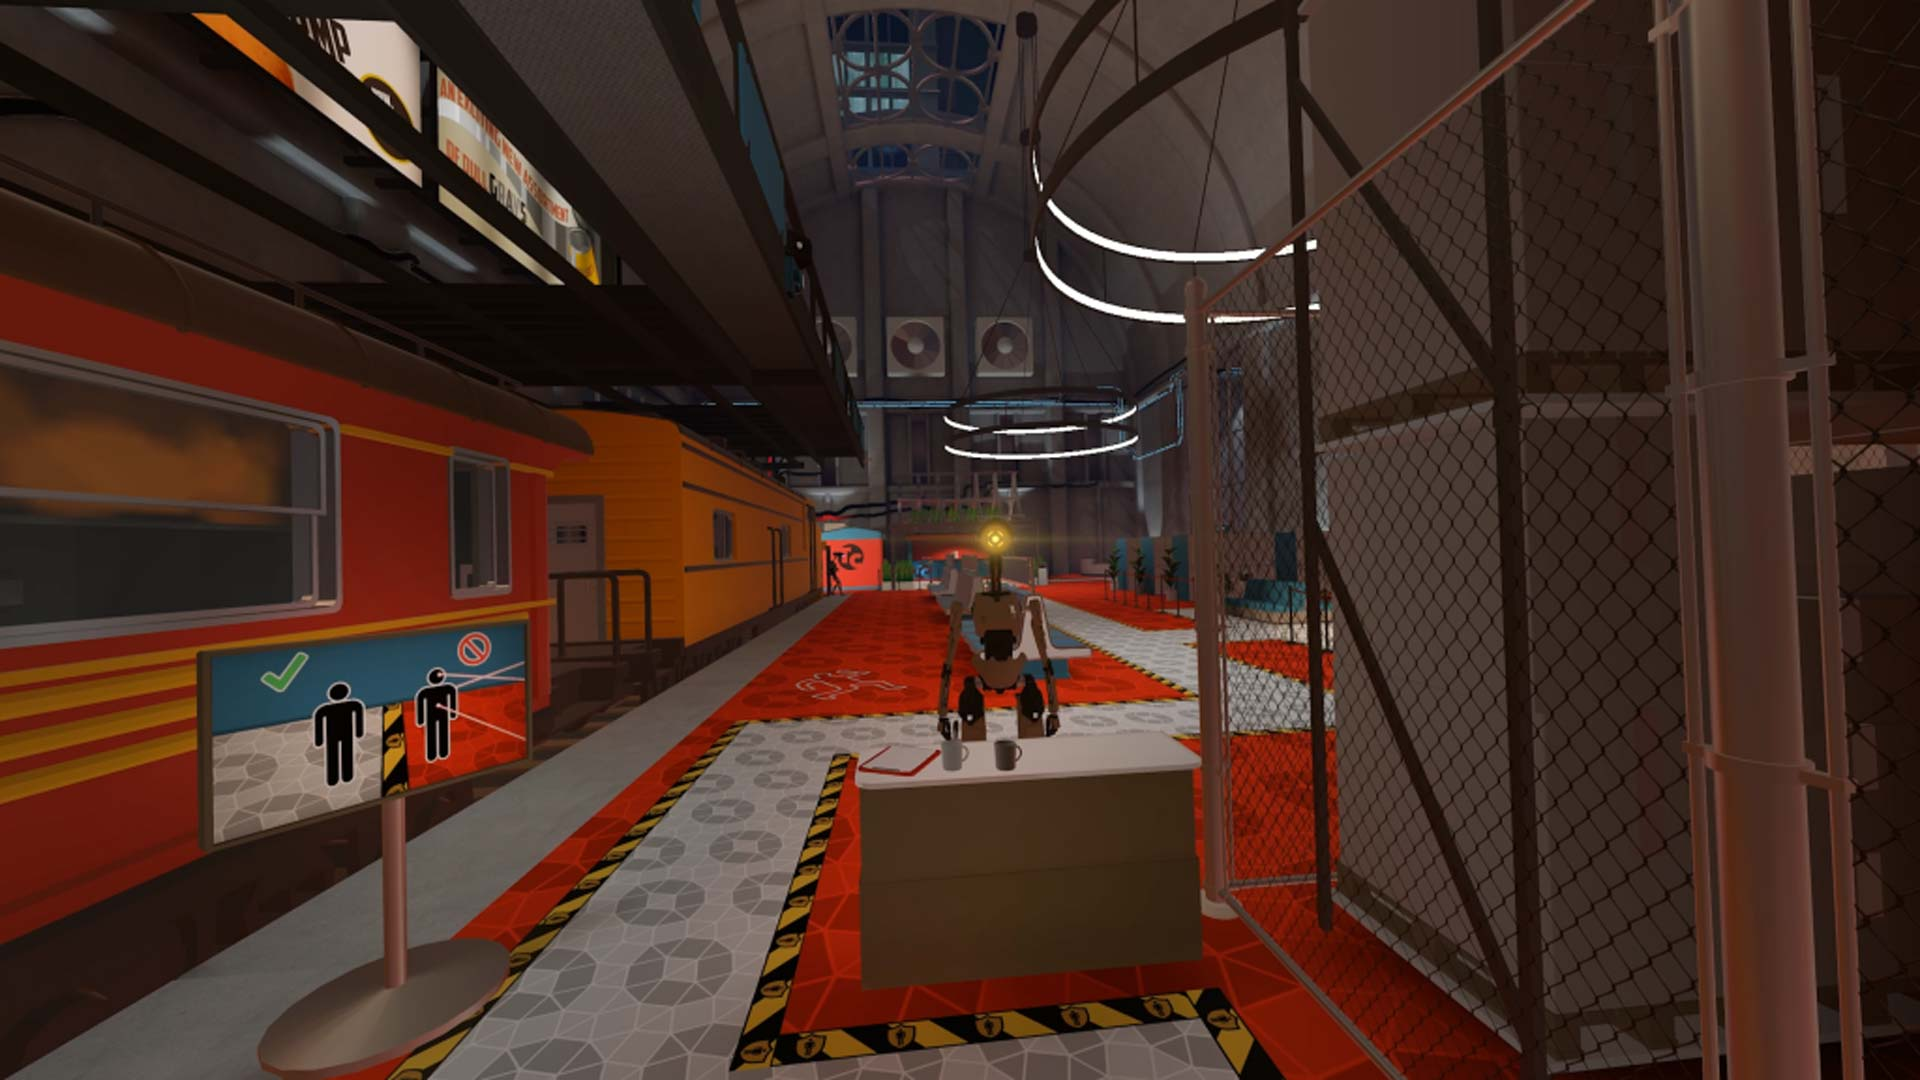 'Budget Cuts 2' to Launch on PC VR Headsets in December 1